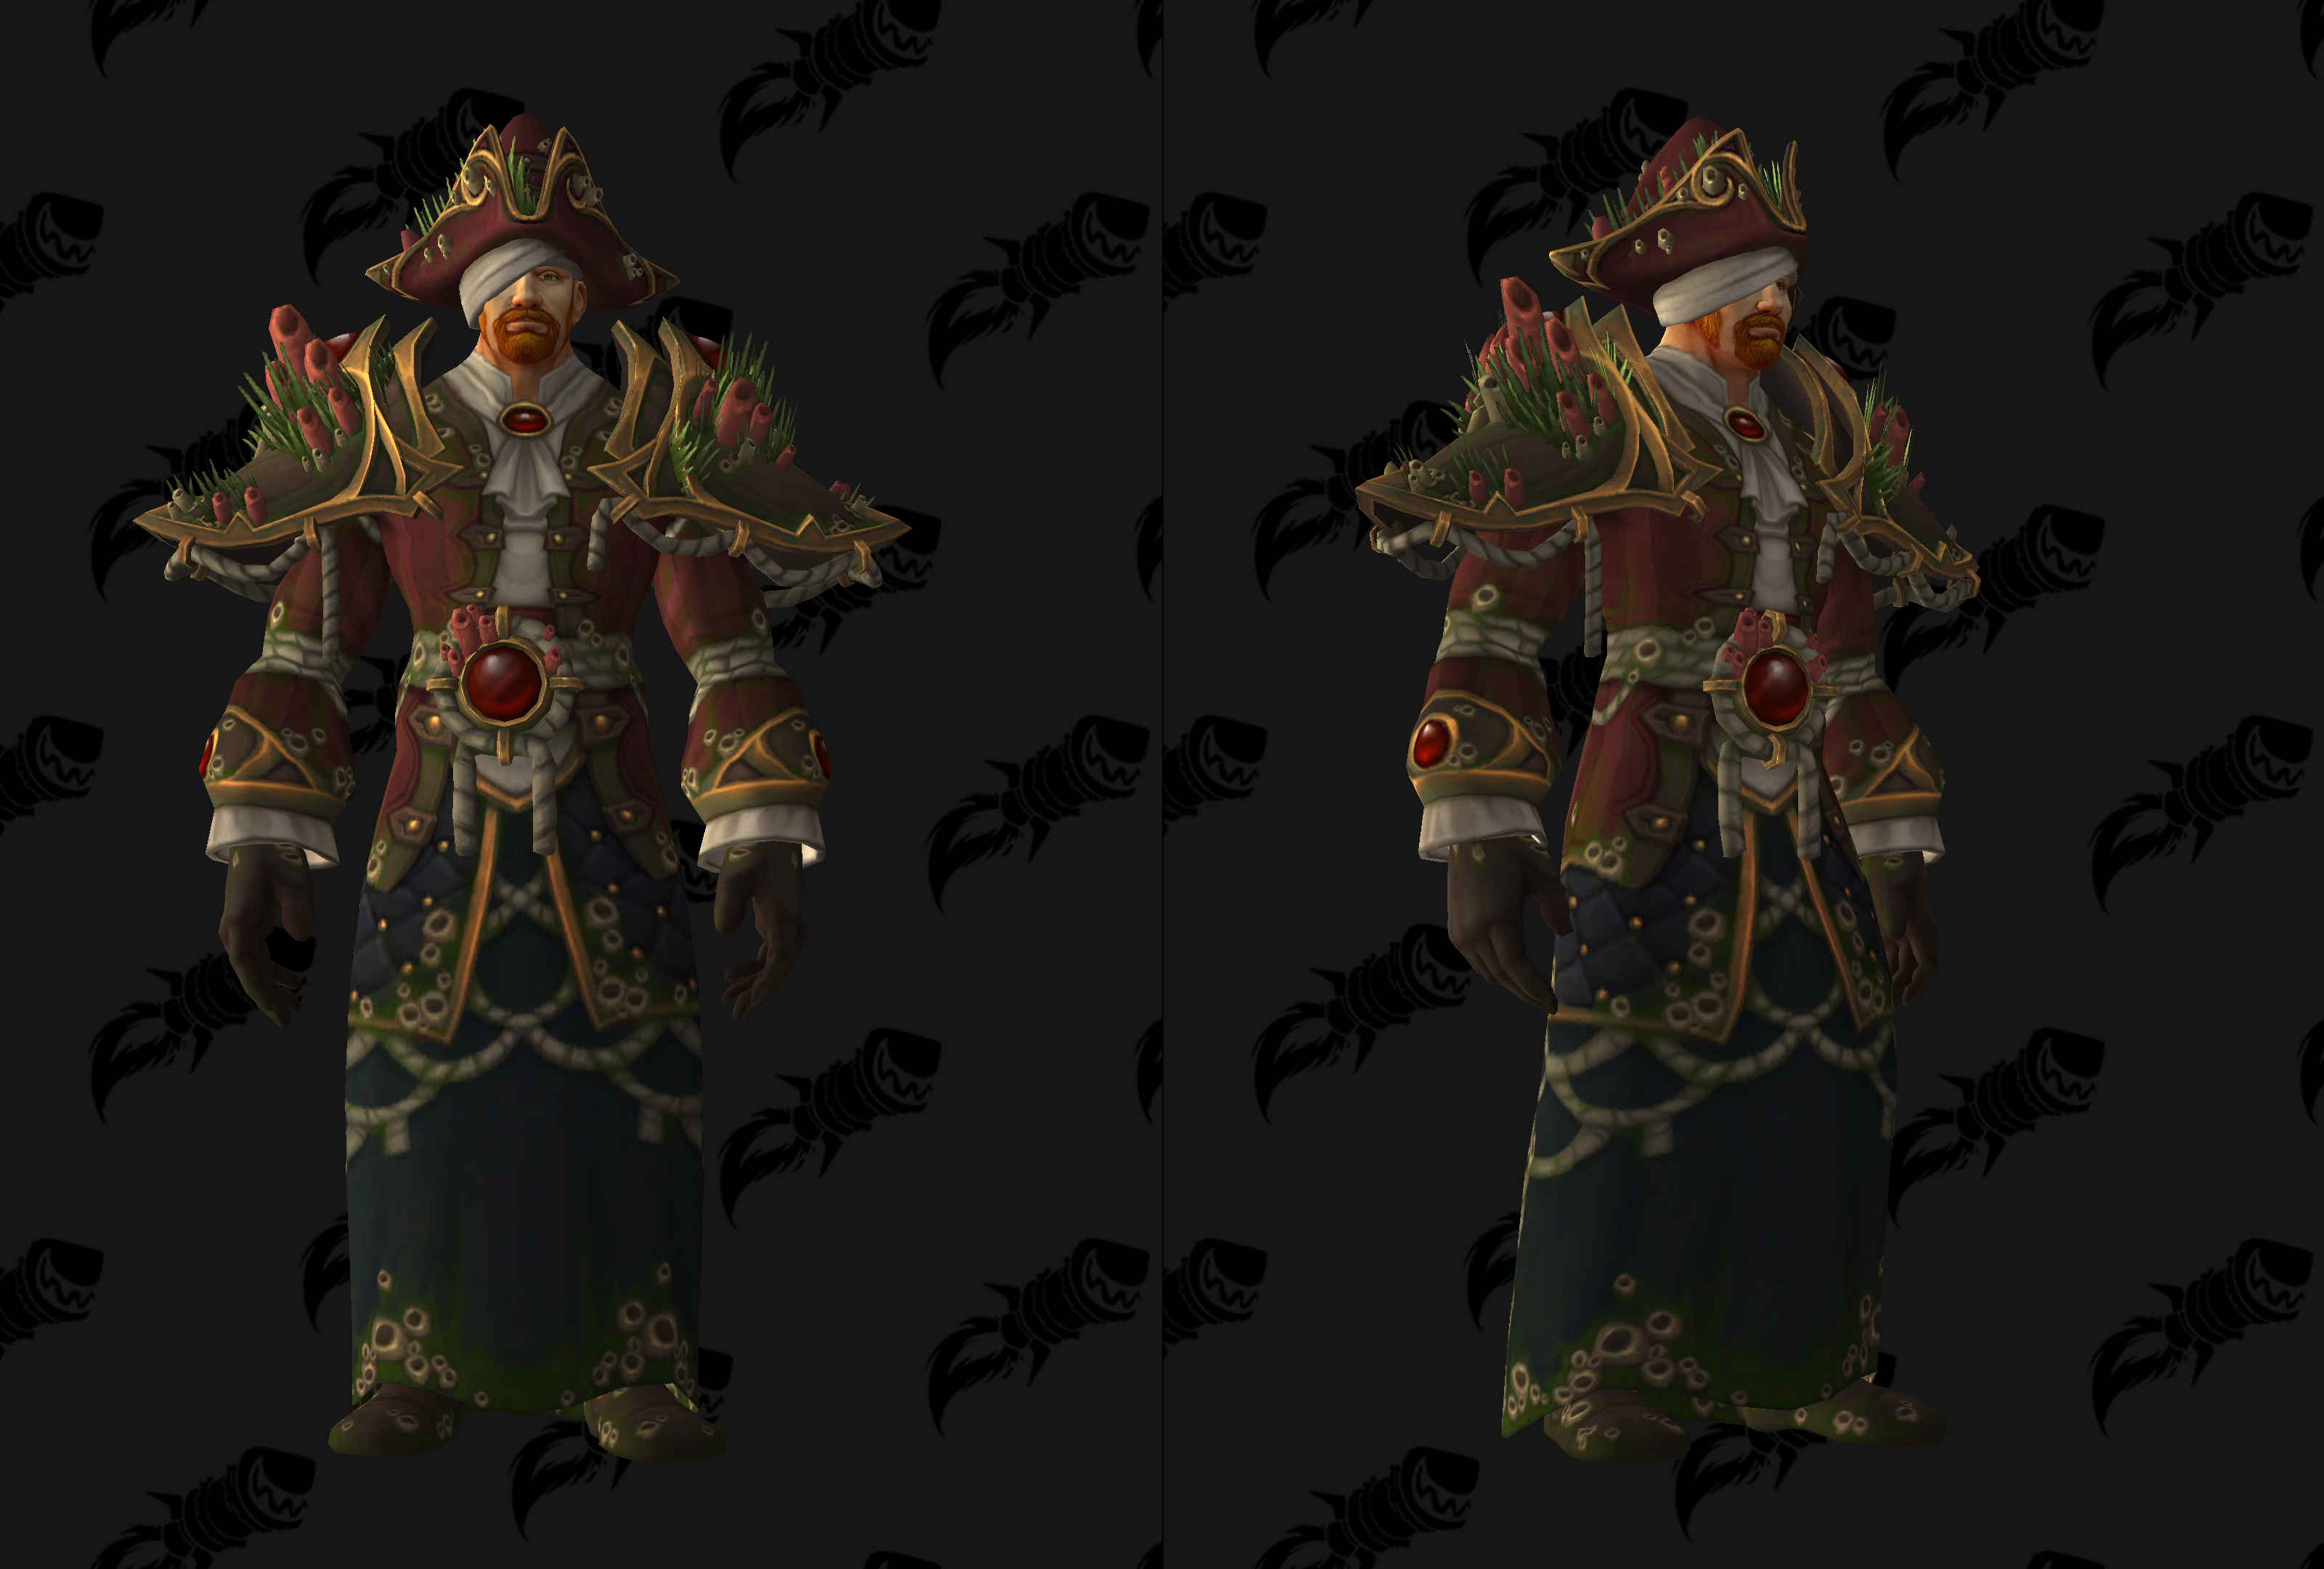 Notorious Aspirant and Gladiator Season 3 PvP Armor Sets - Some